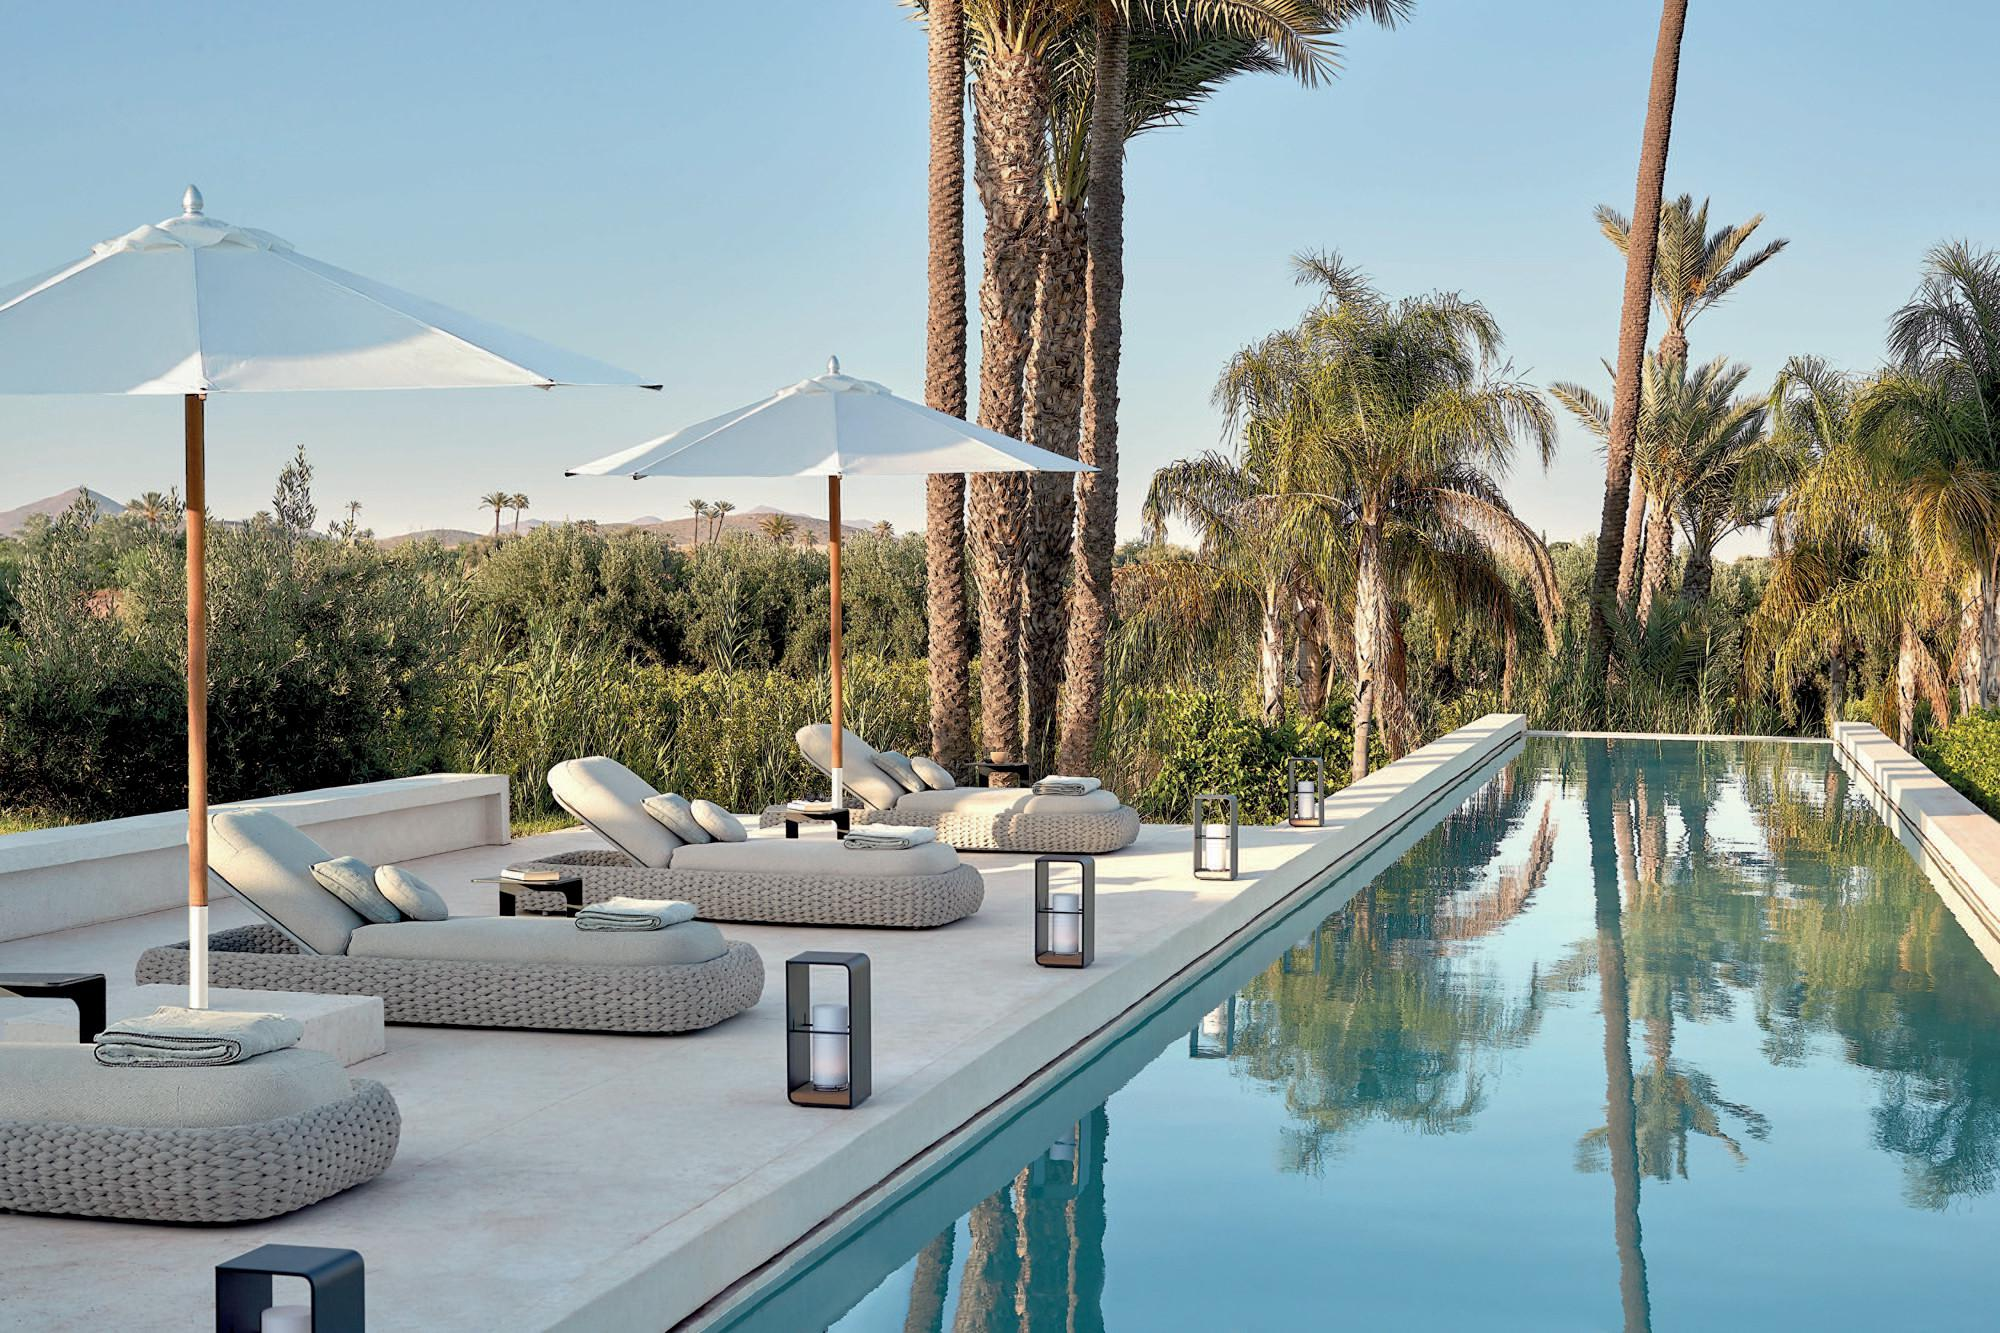 Kobo loungers, umbrellas and Flame Lumo by the pool